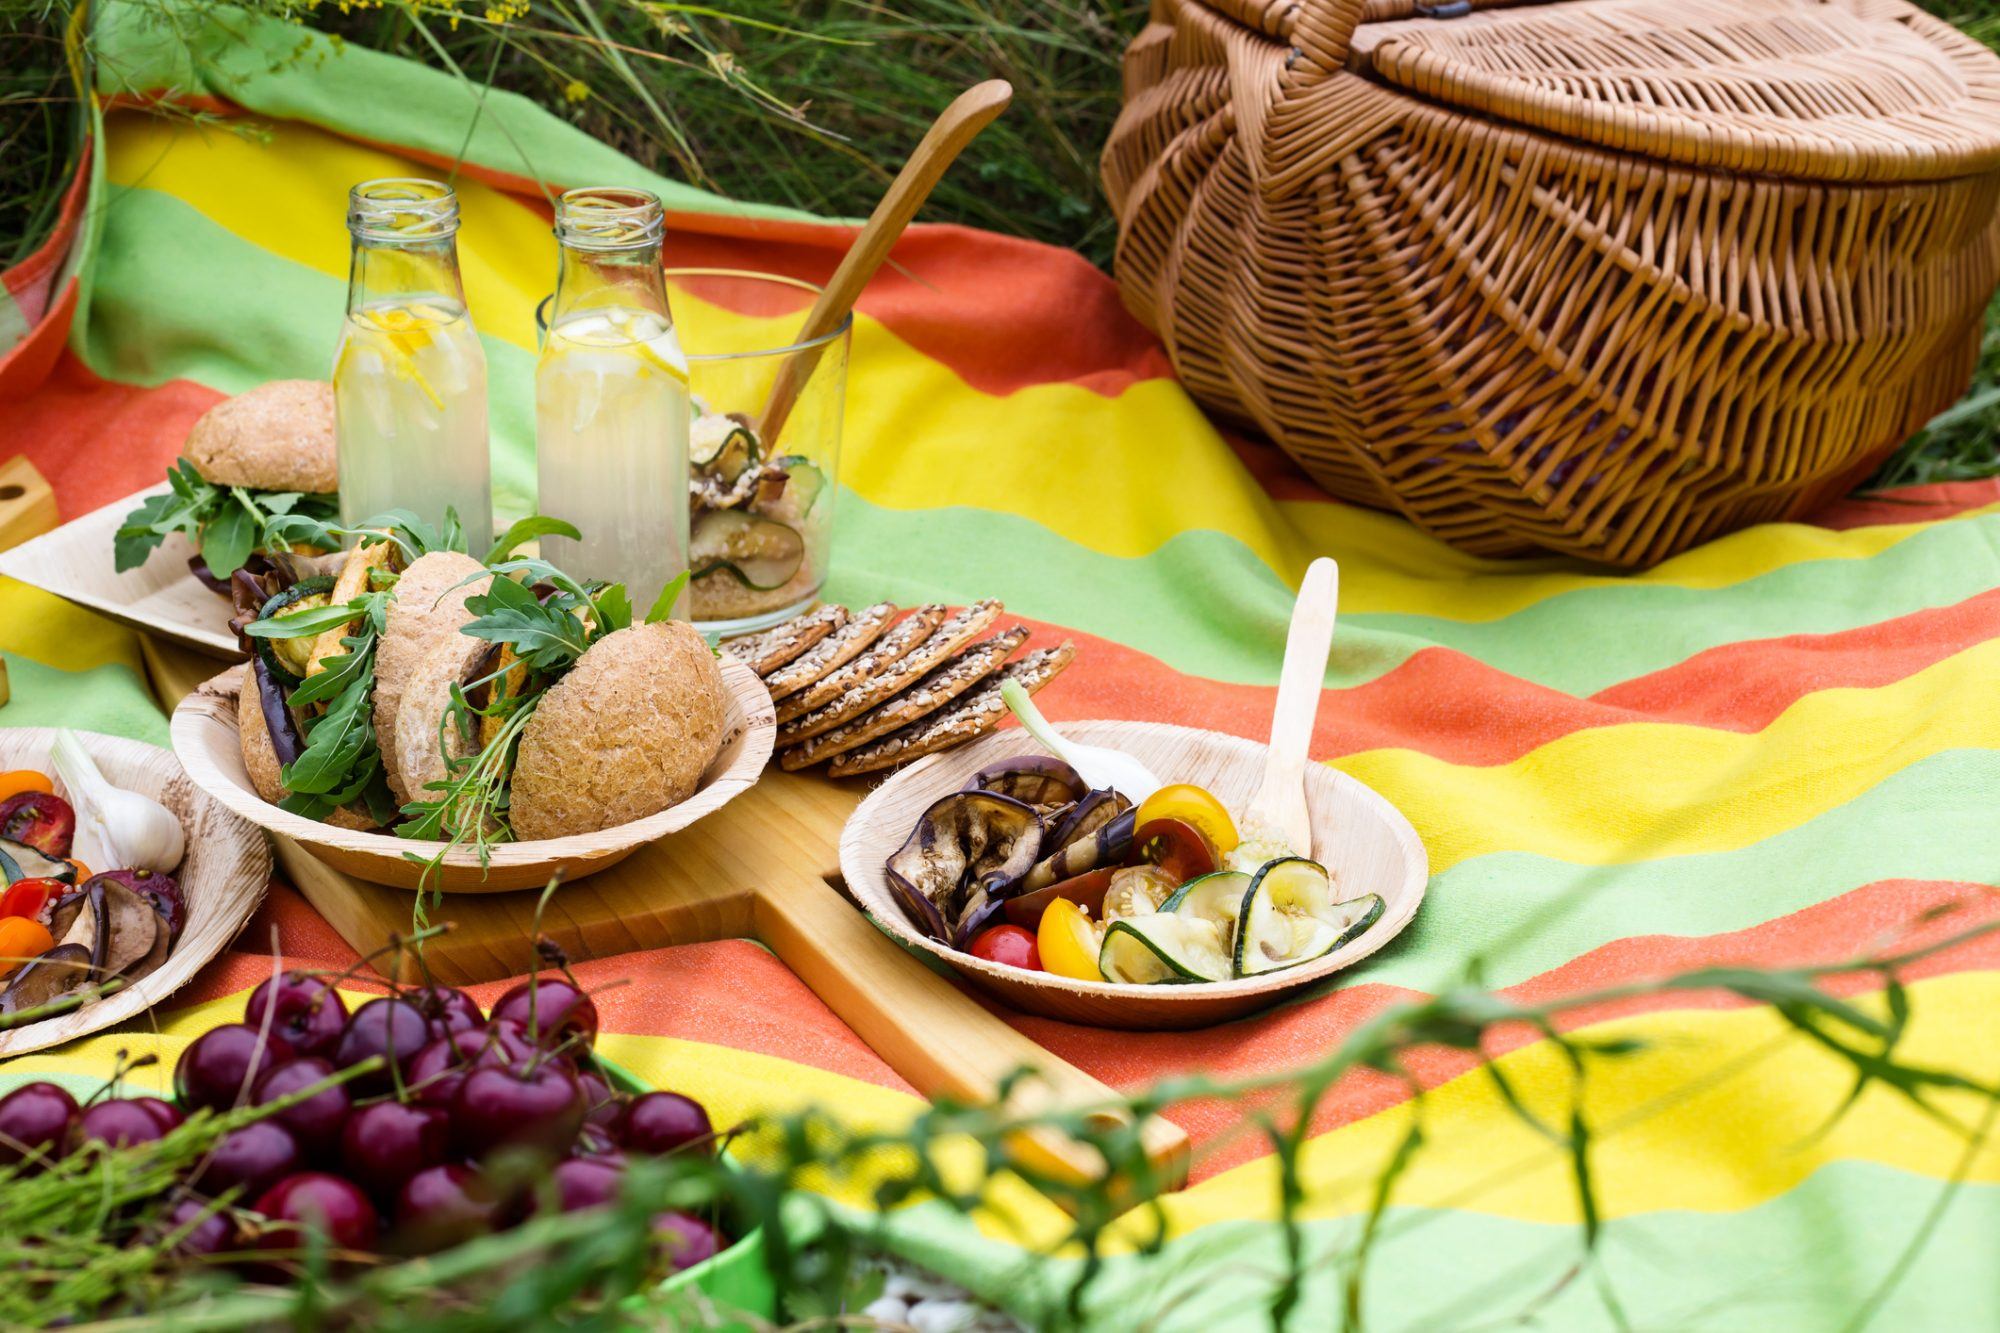 Picnic with fresh vegan dishes in summer park